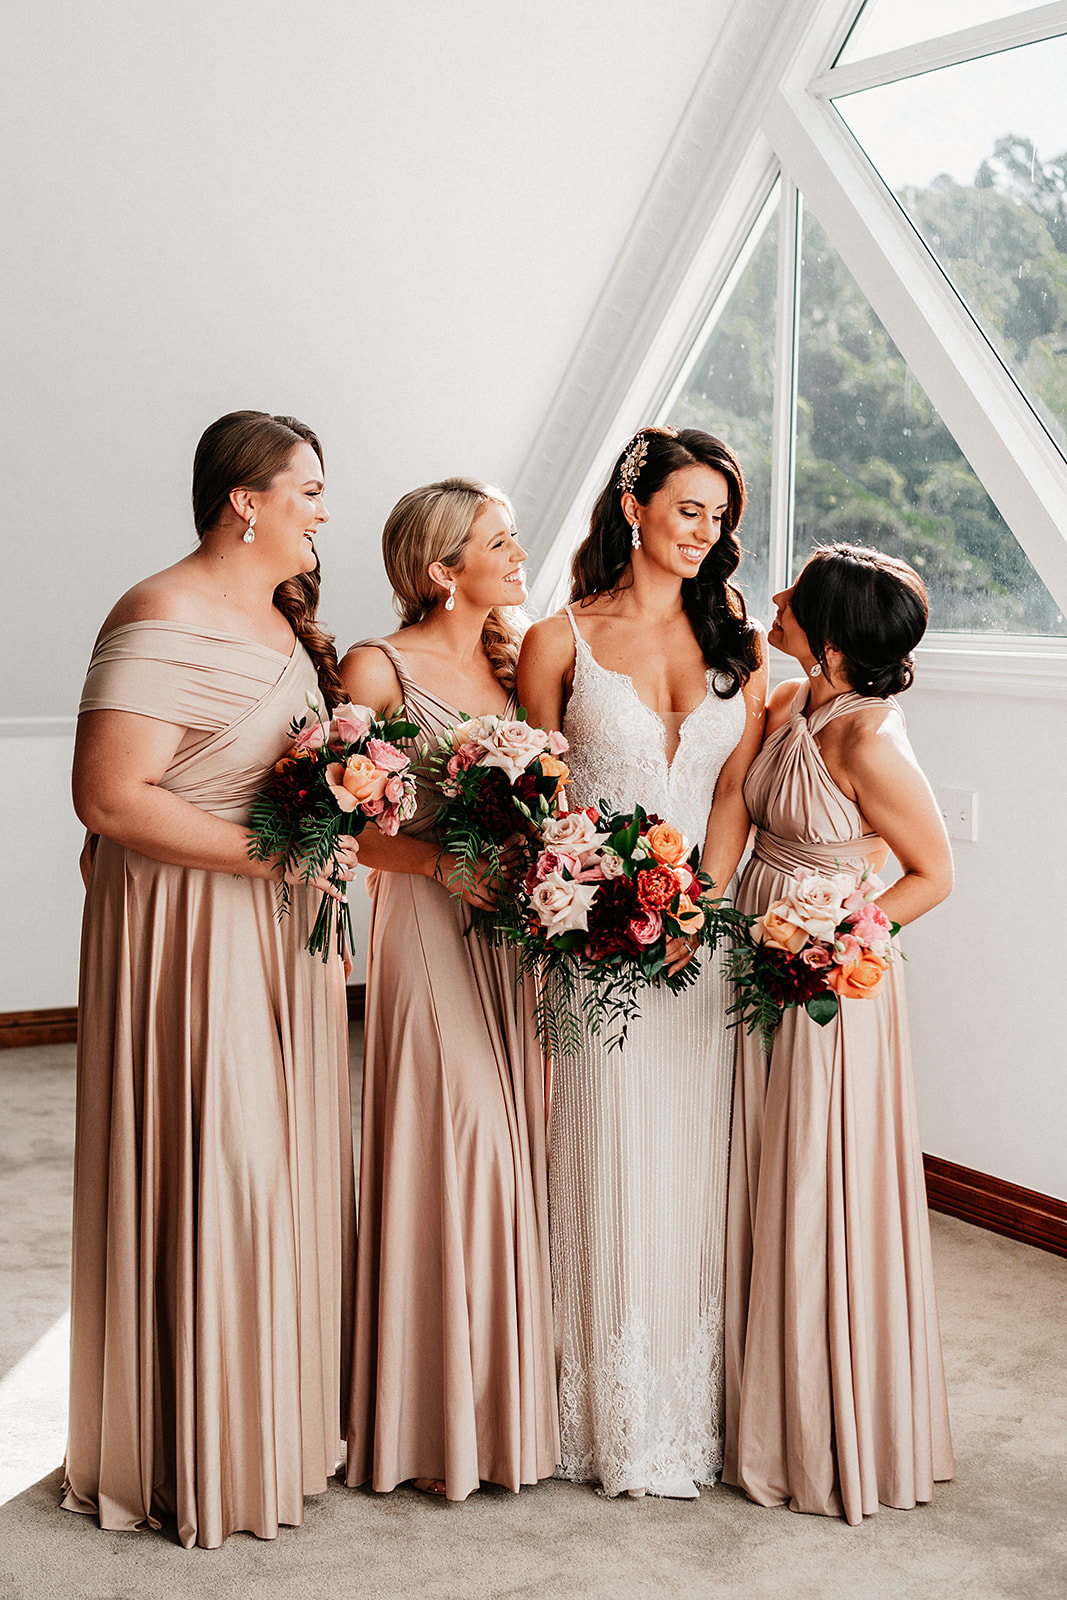 Wedding Flowers in all Burgundy, Antique Pink, Apricot, Burnt Orange and Dark Lush Greenery